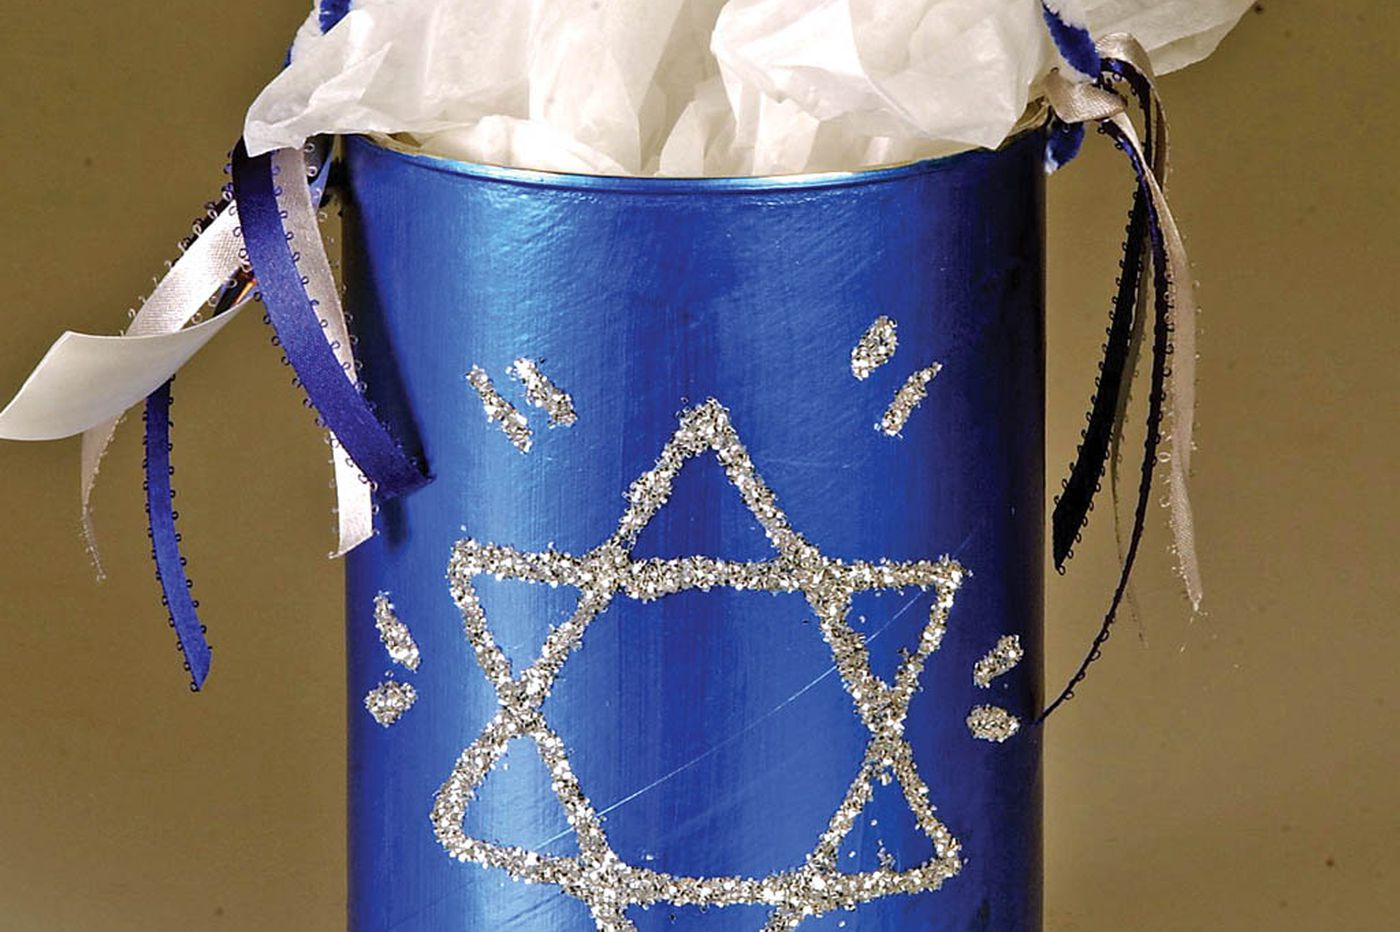 Crafty kids: A gift for Hanukkah